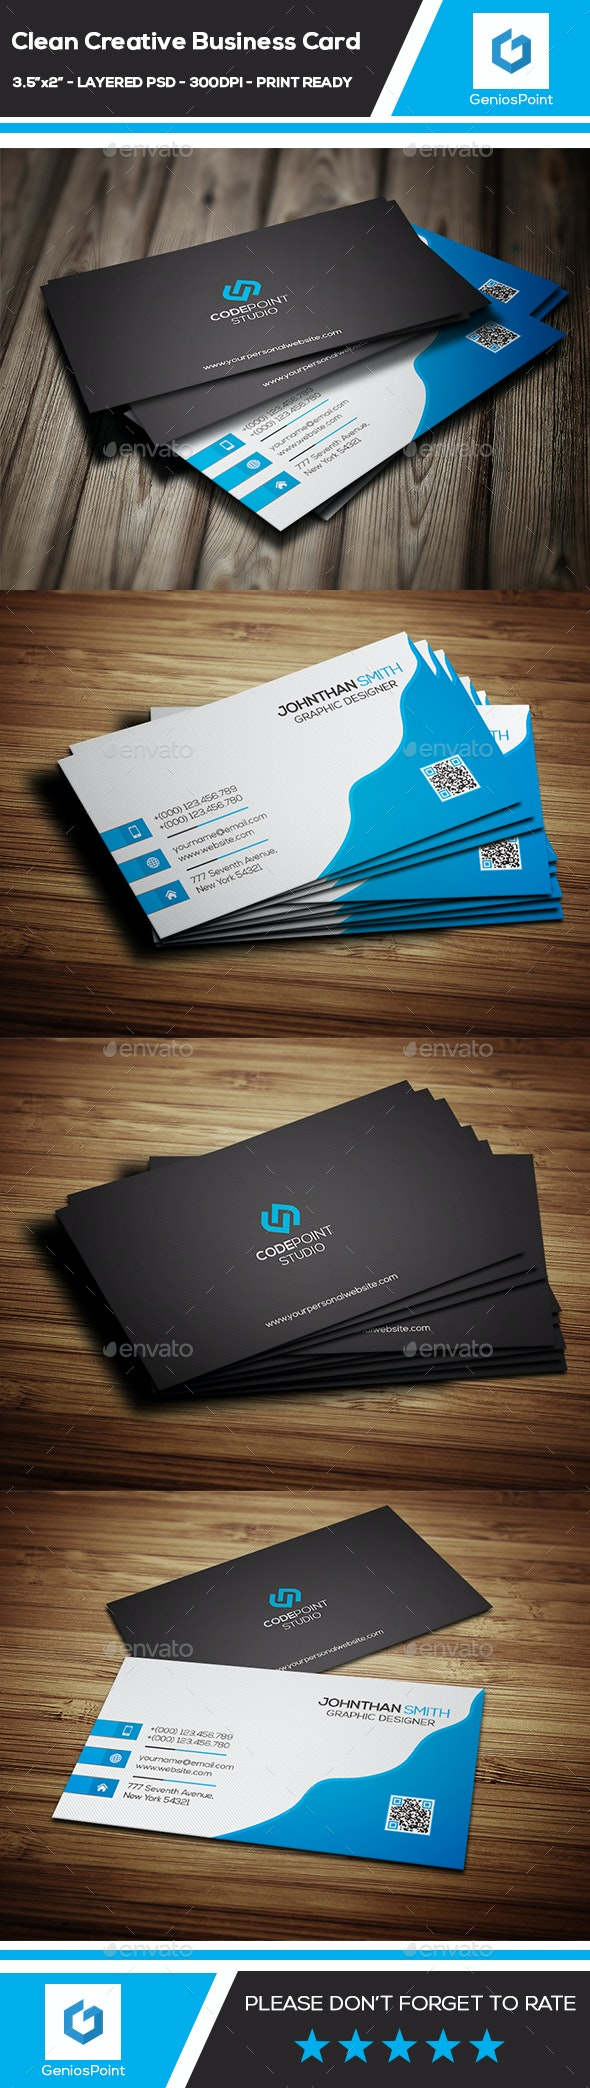 Clean Creative Business Card  - Business Cards Print Templates